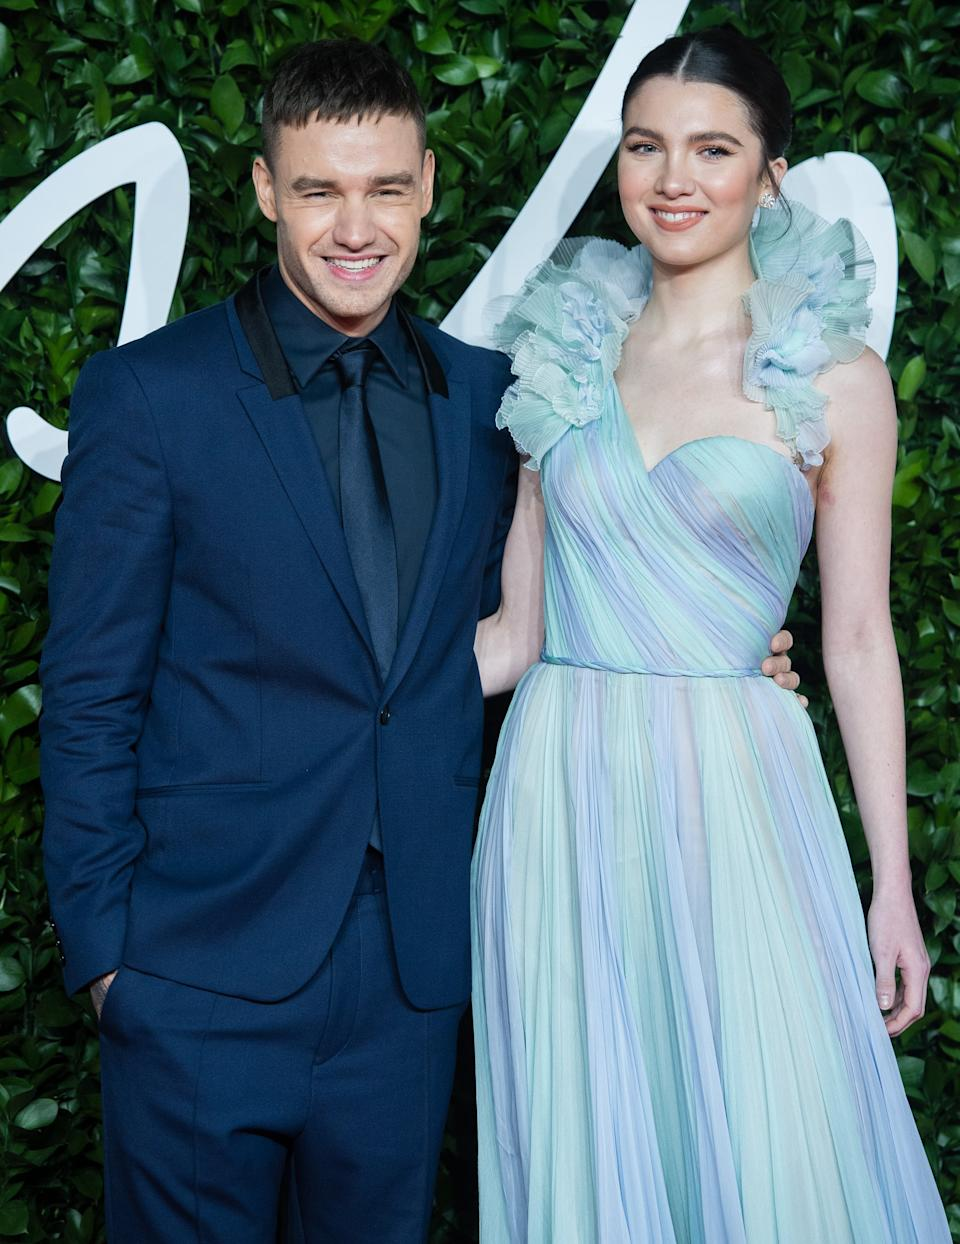 LONDON, ENGLAND - DECEMBER 02: Liam Payne and Maya Henry arrive at The Fashion Awards 2019 held at Royal Albert Hall on December 02, 2019 in London, England. (Photo by Samir Hussein/WireImage)